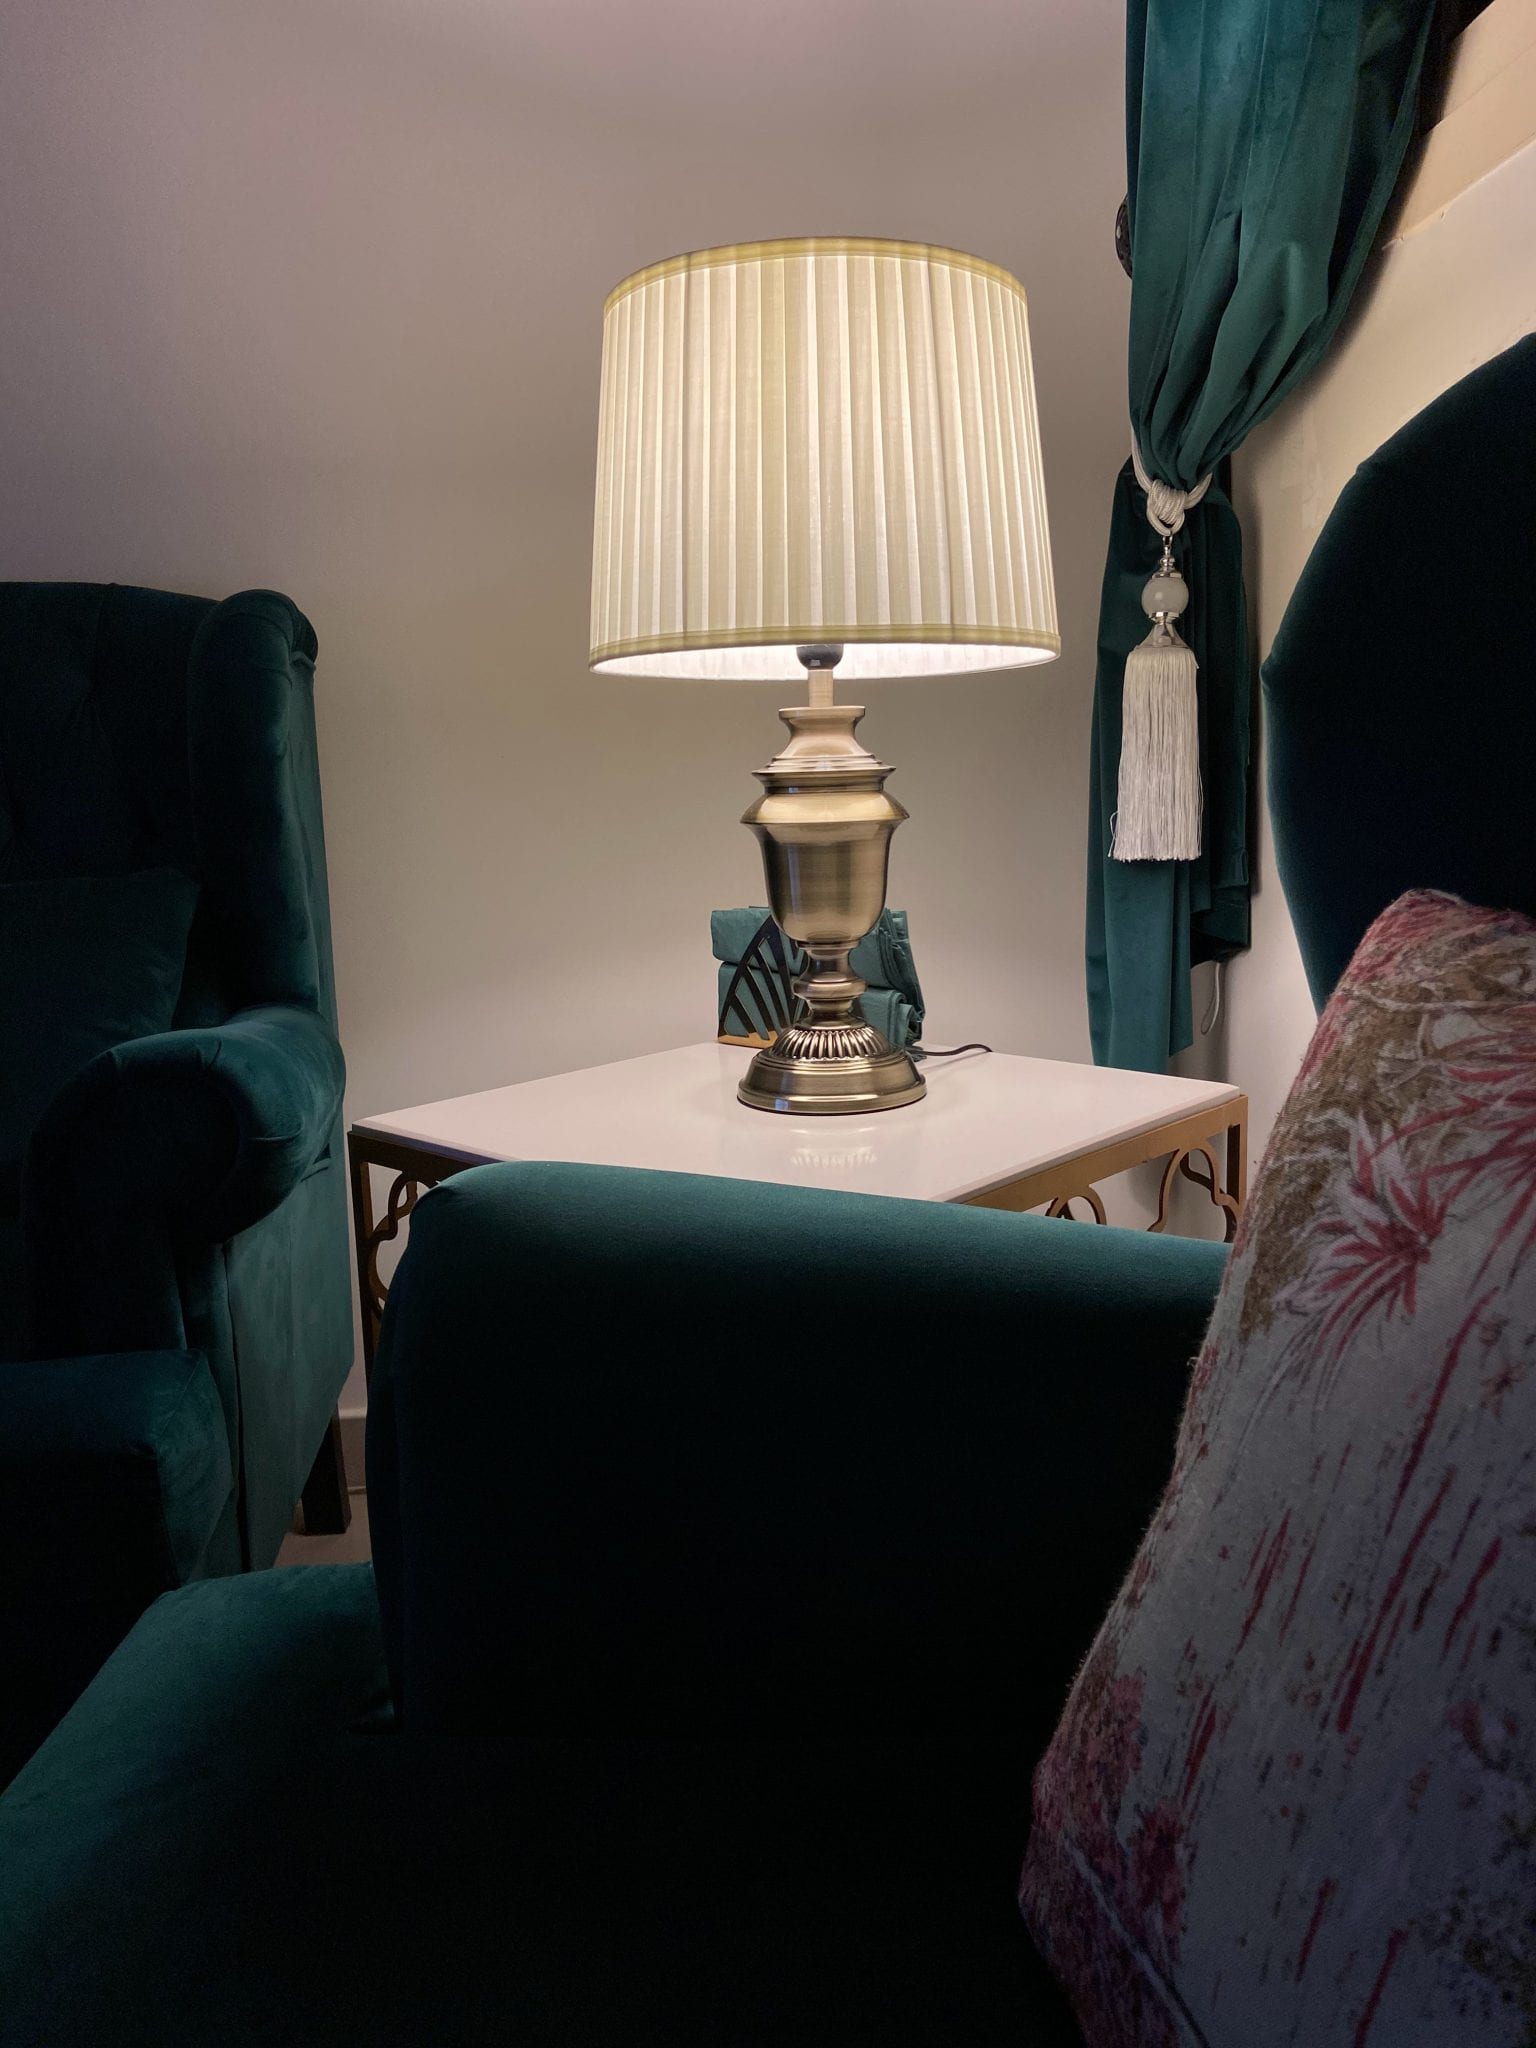 white and gold table lamp on white wooden table